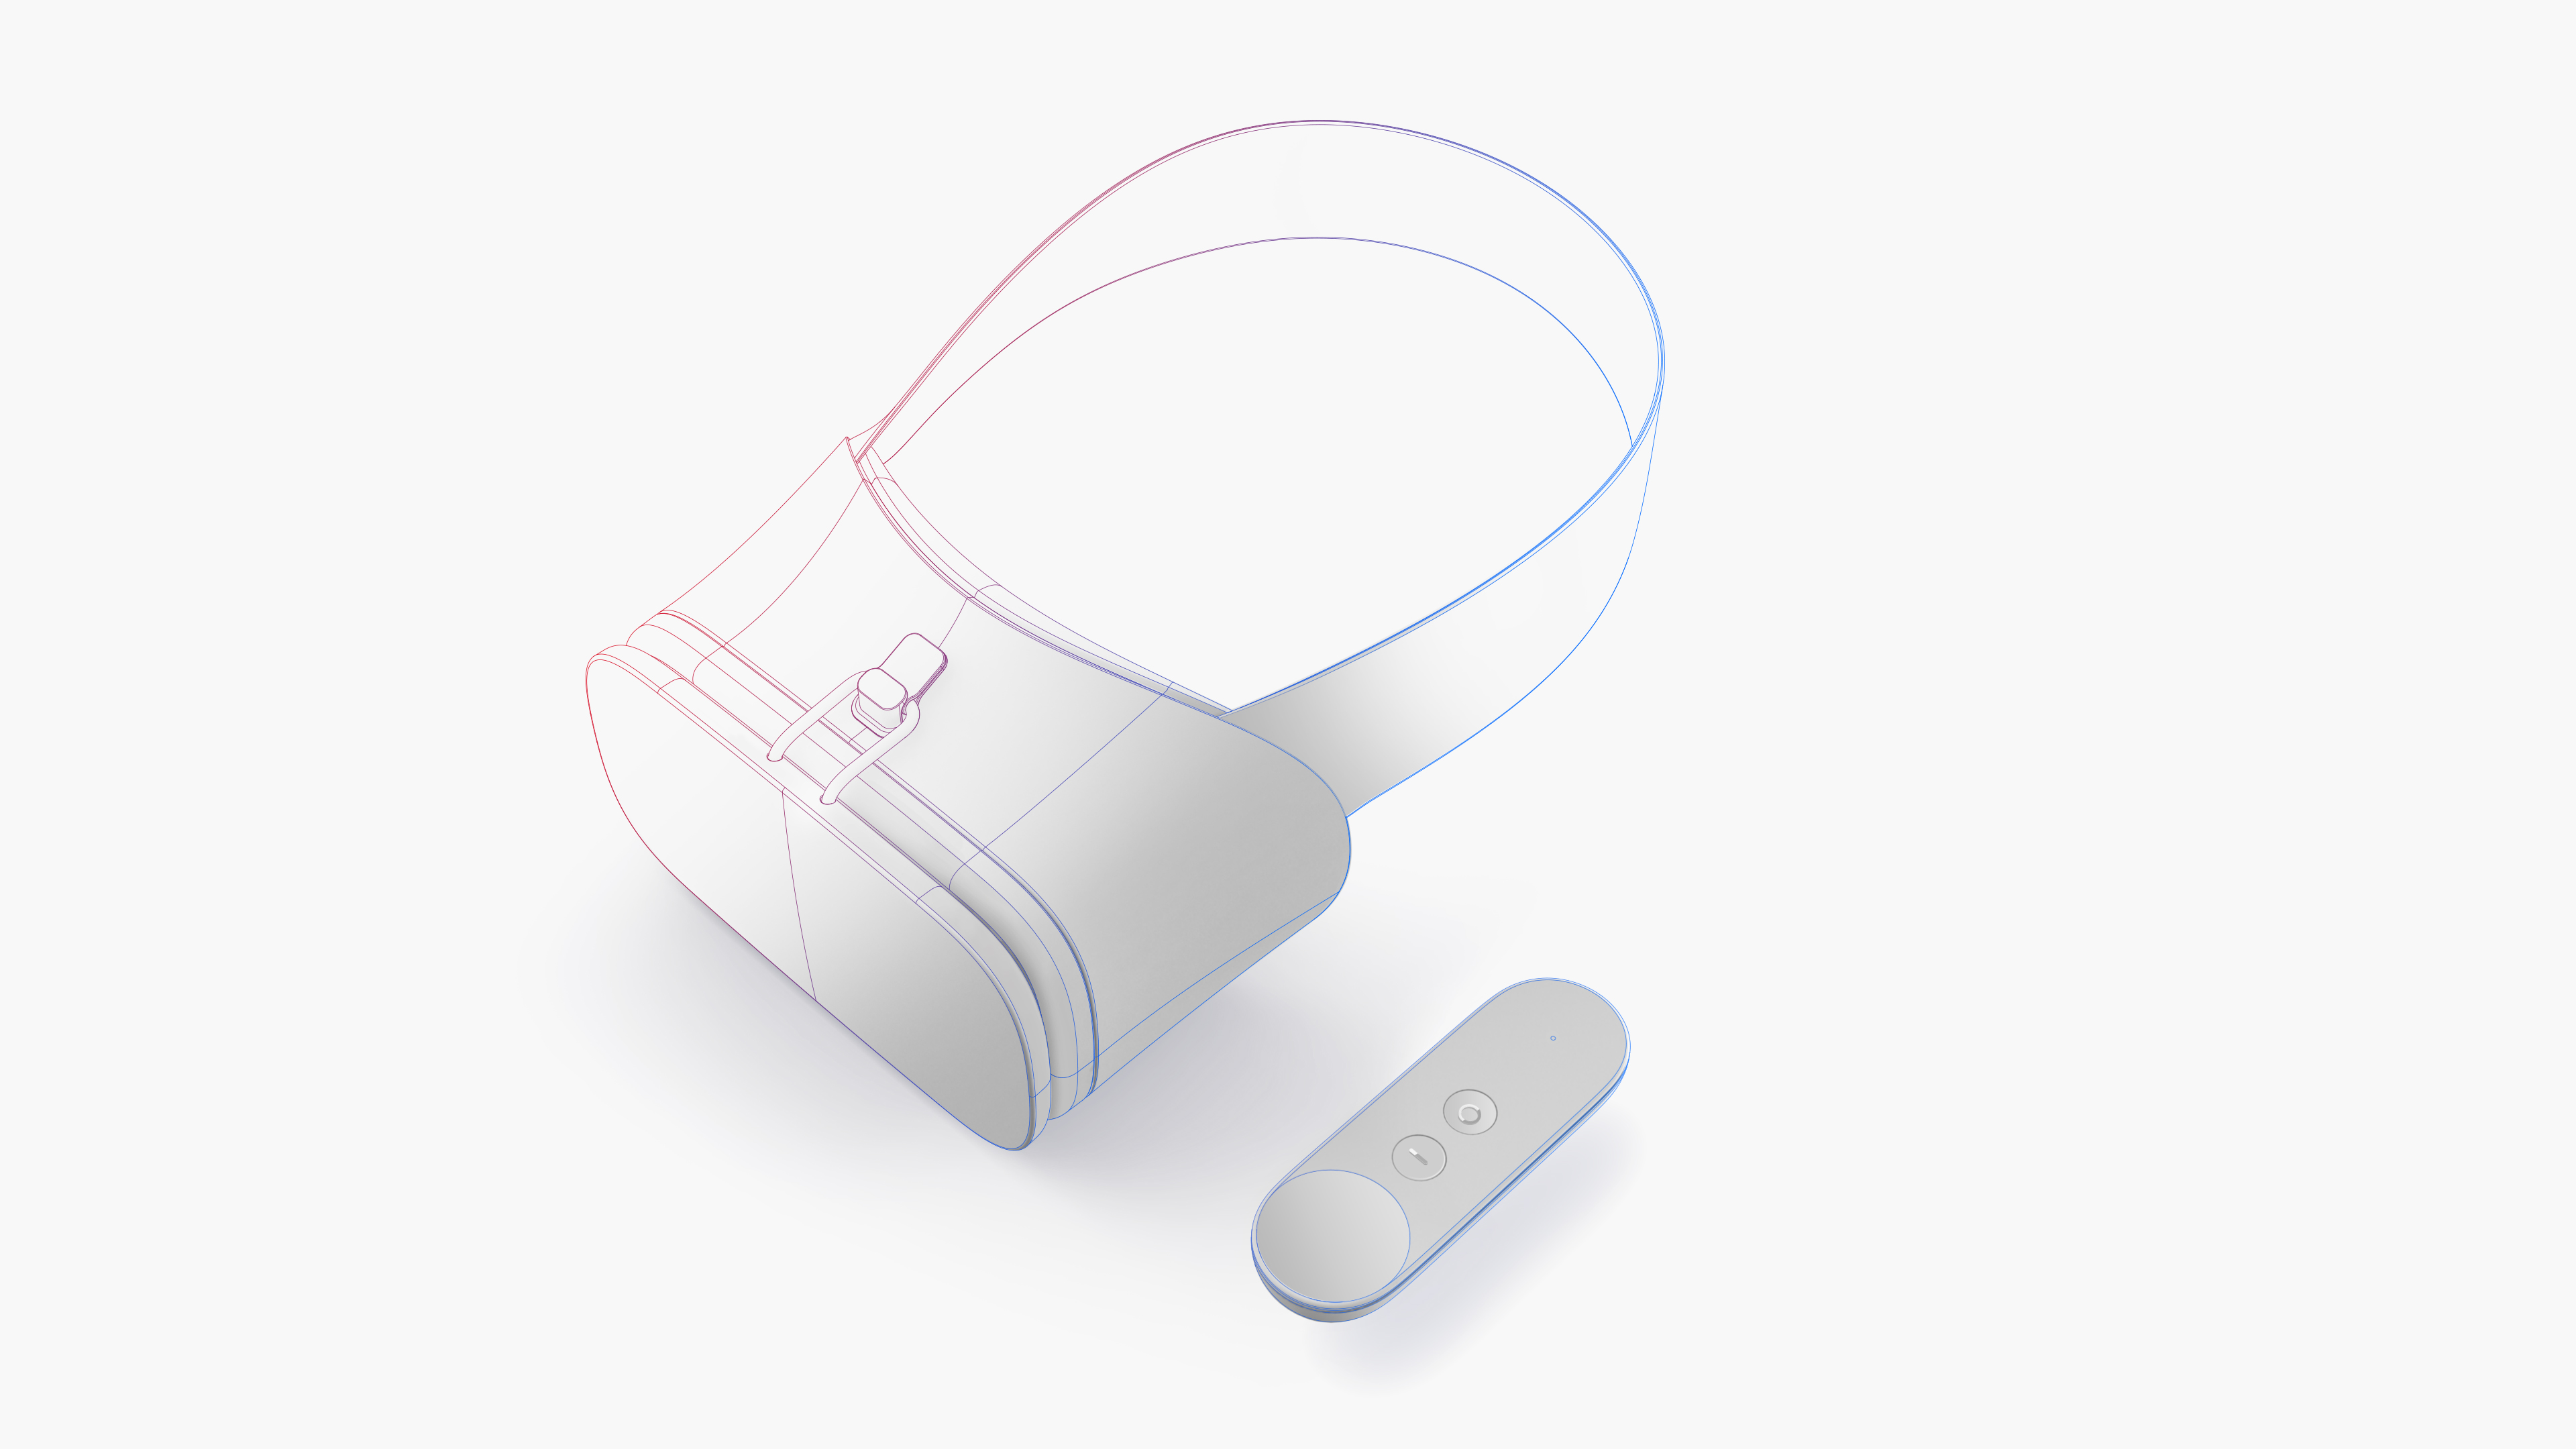 Google reveals plans for new VR headset and motion controller